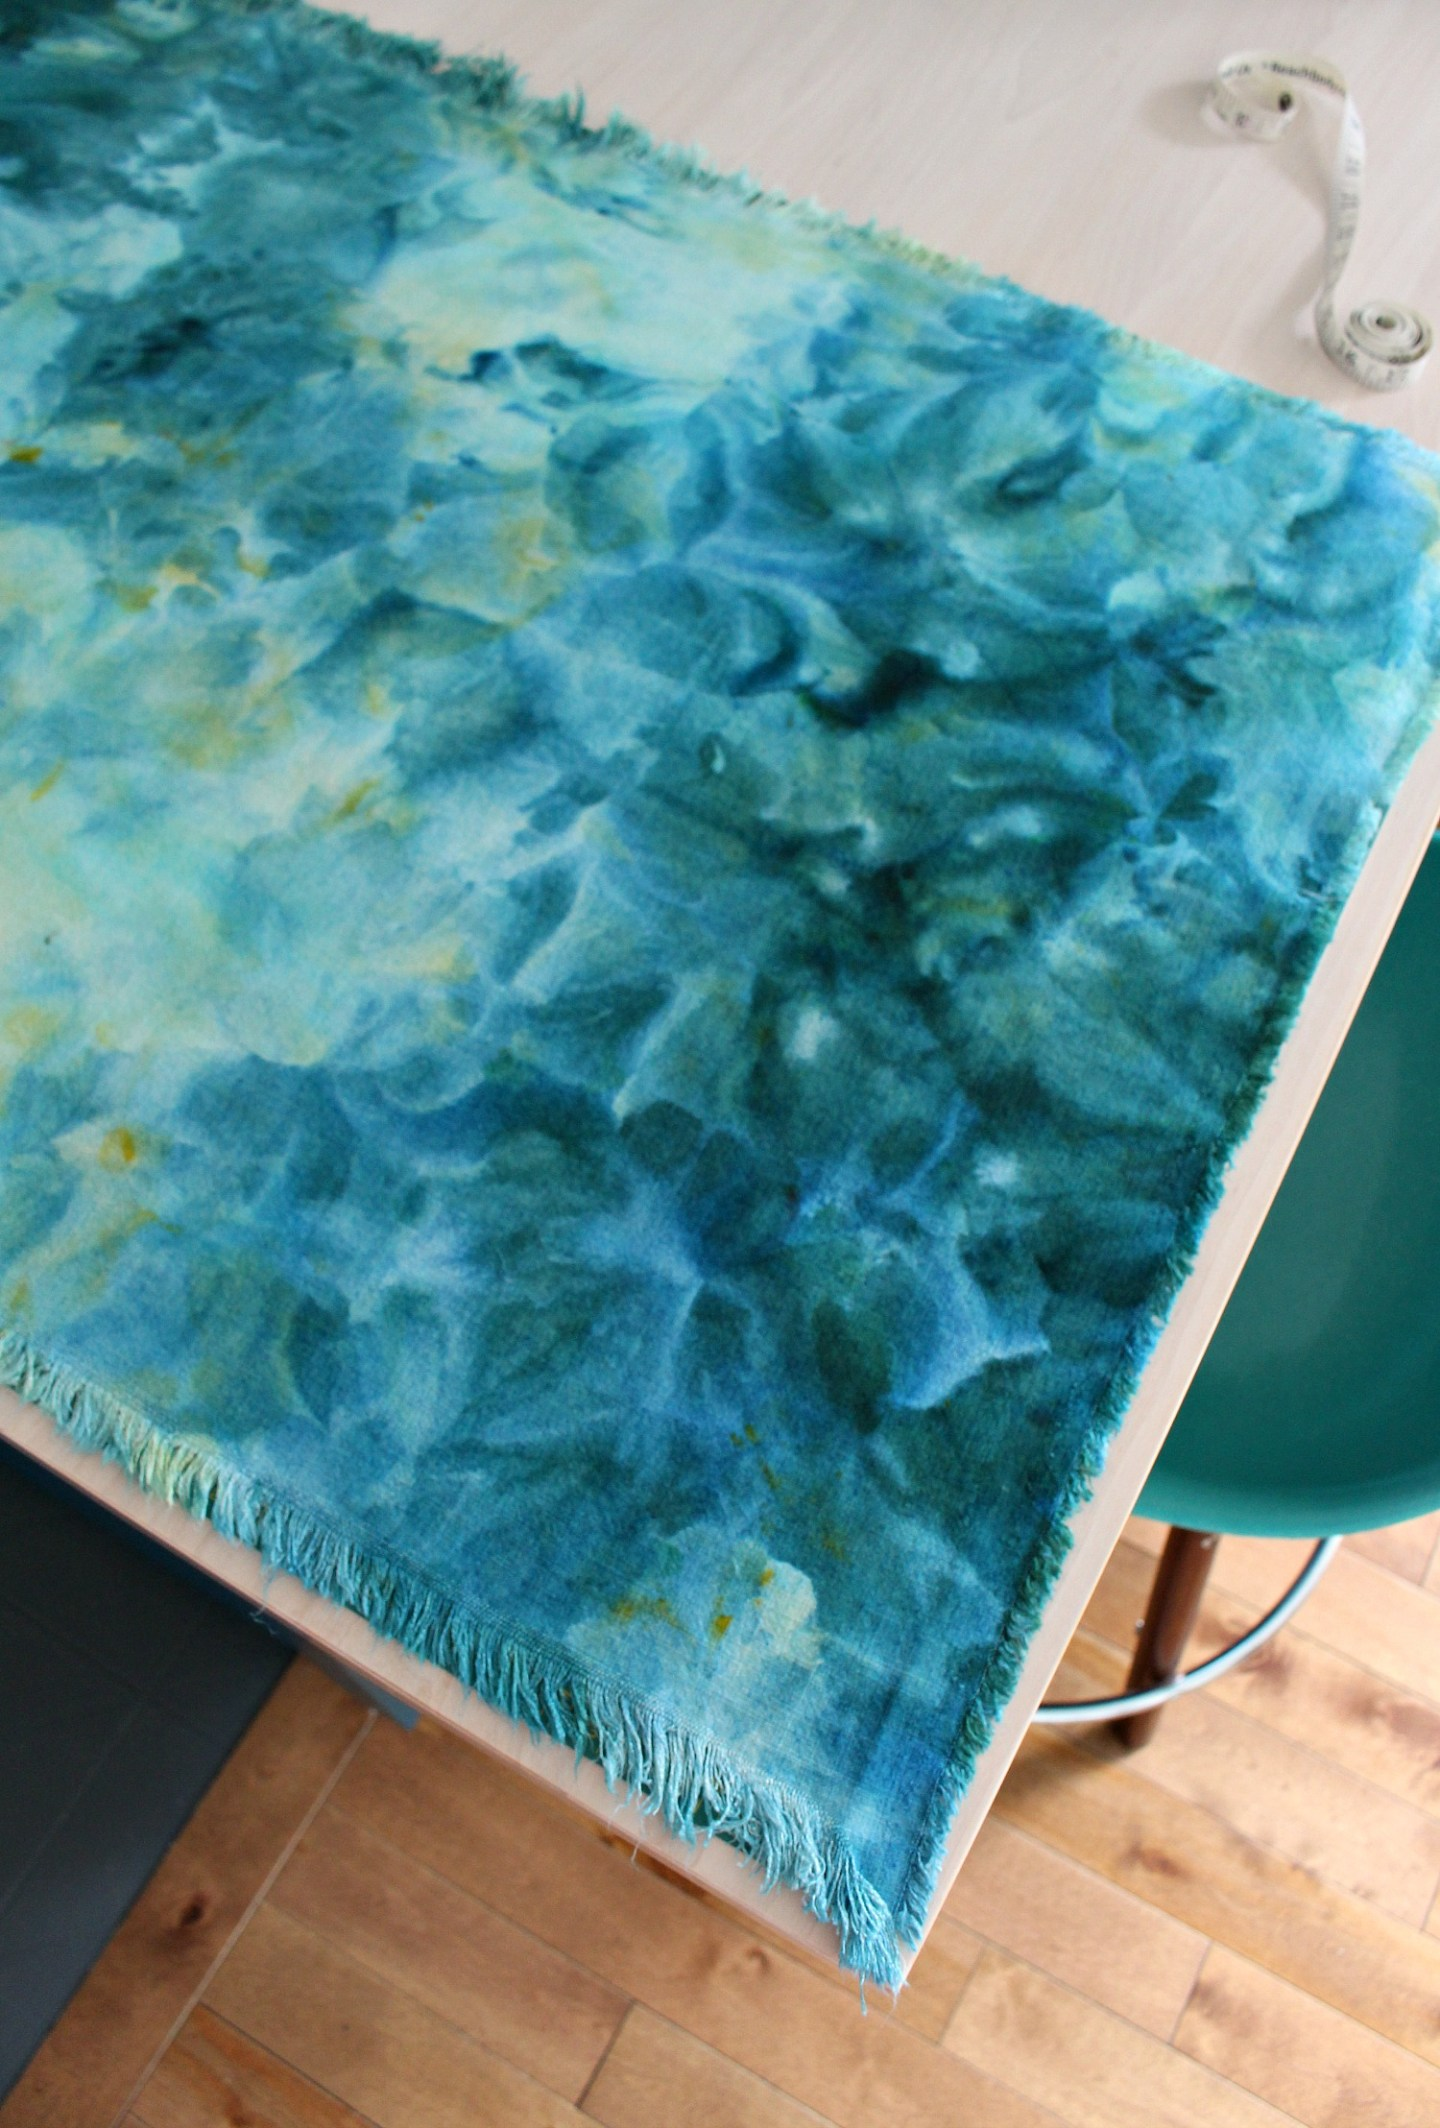 DIY Ice Dyed Fabric in Teal